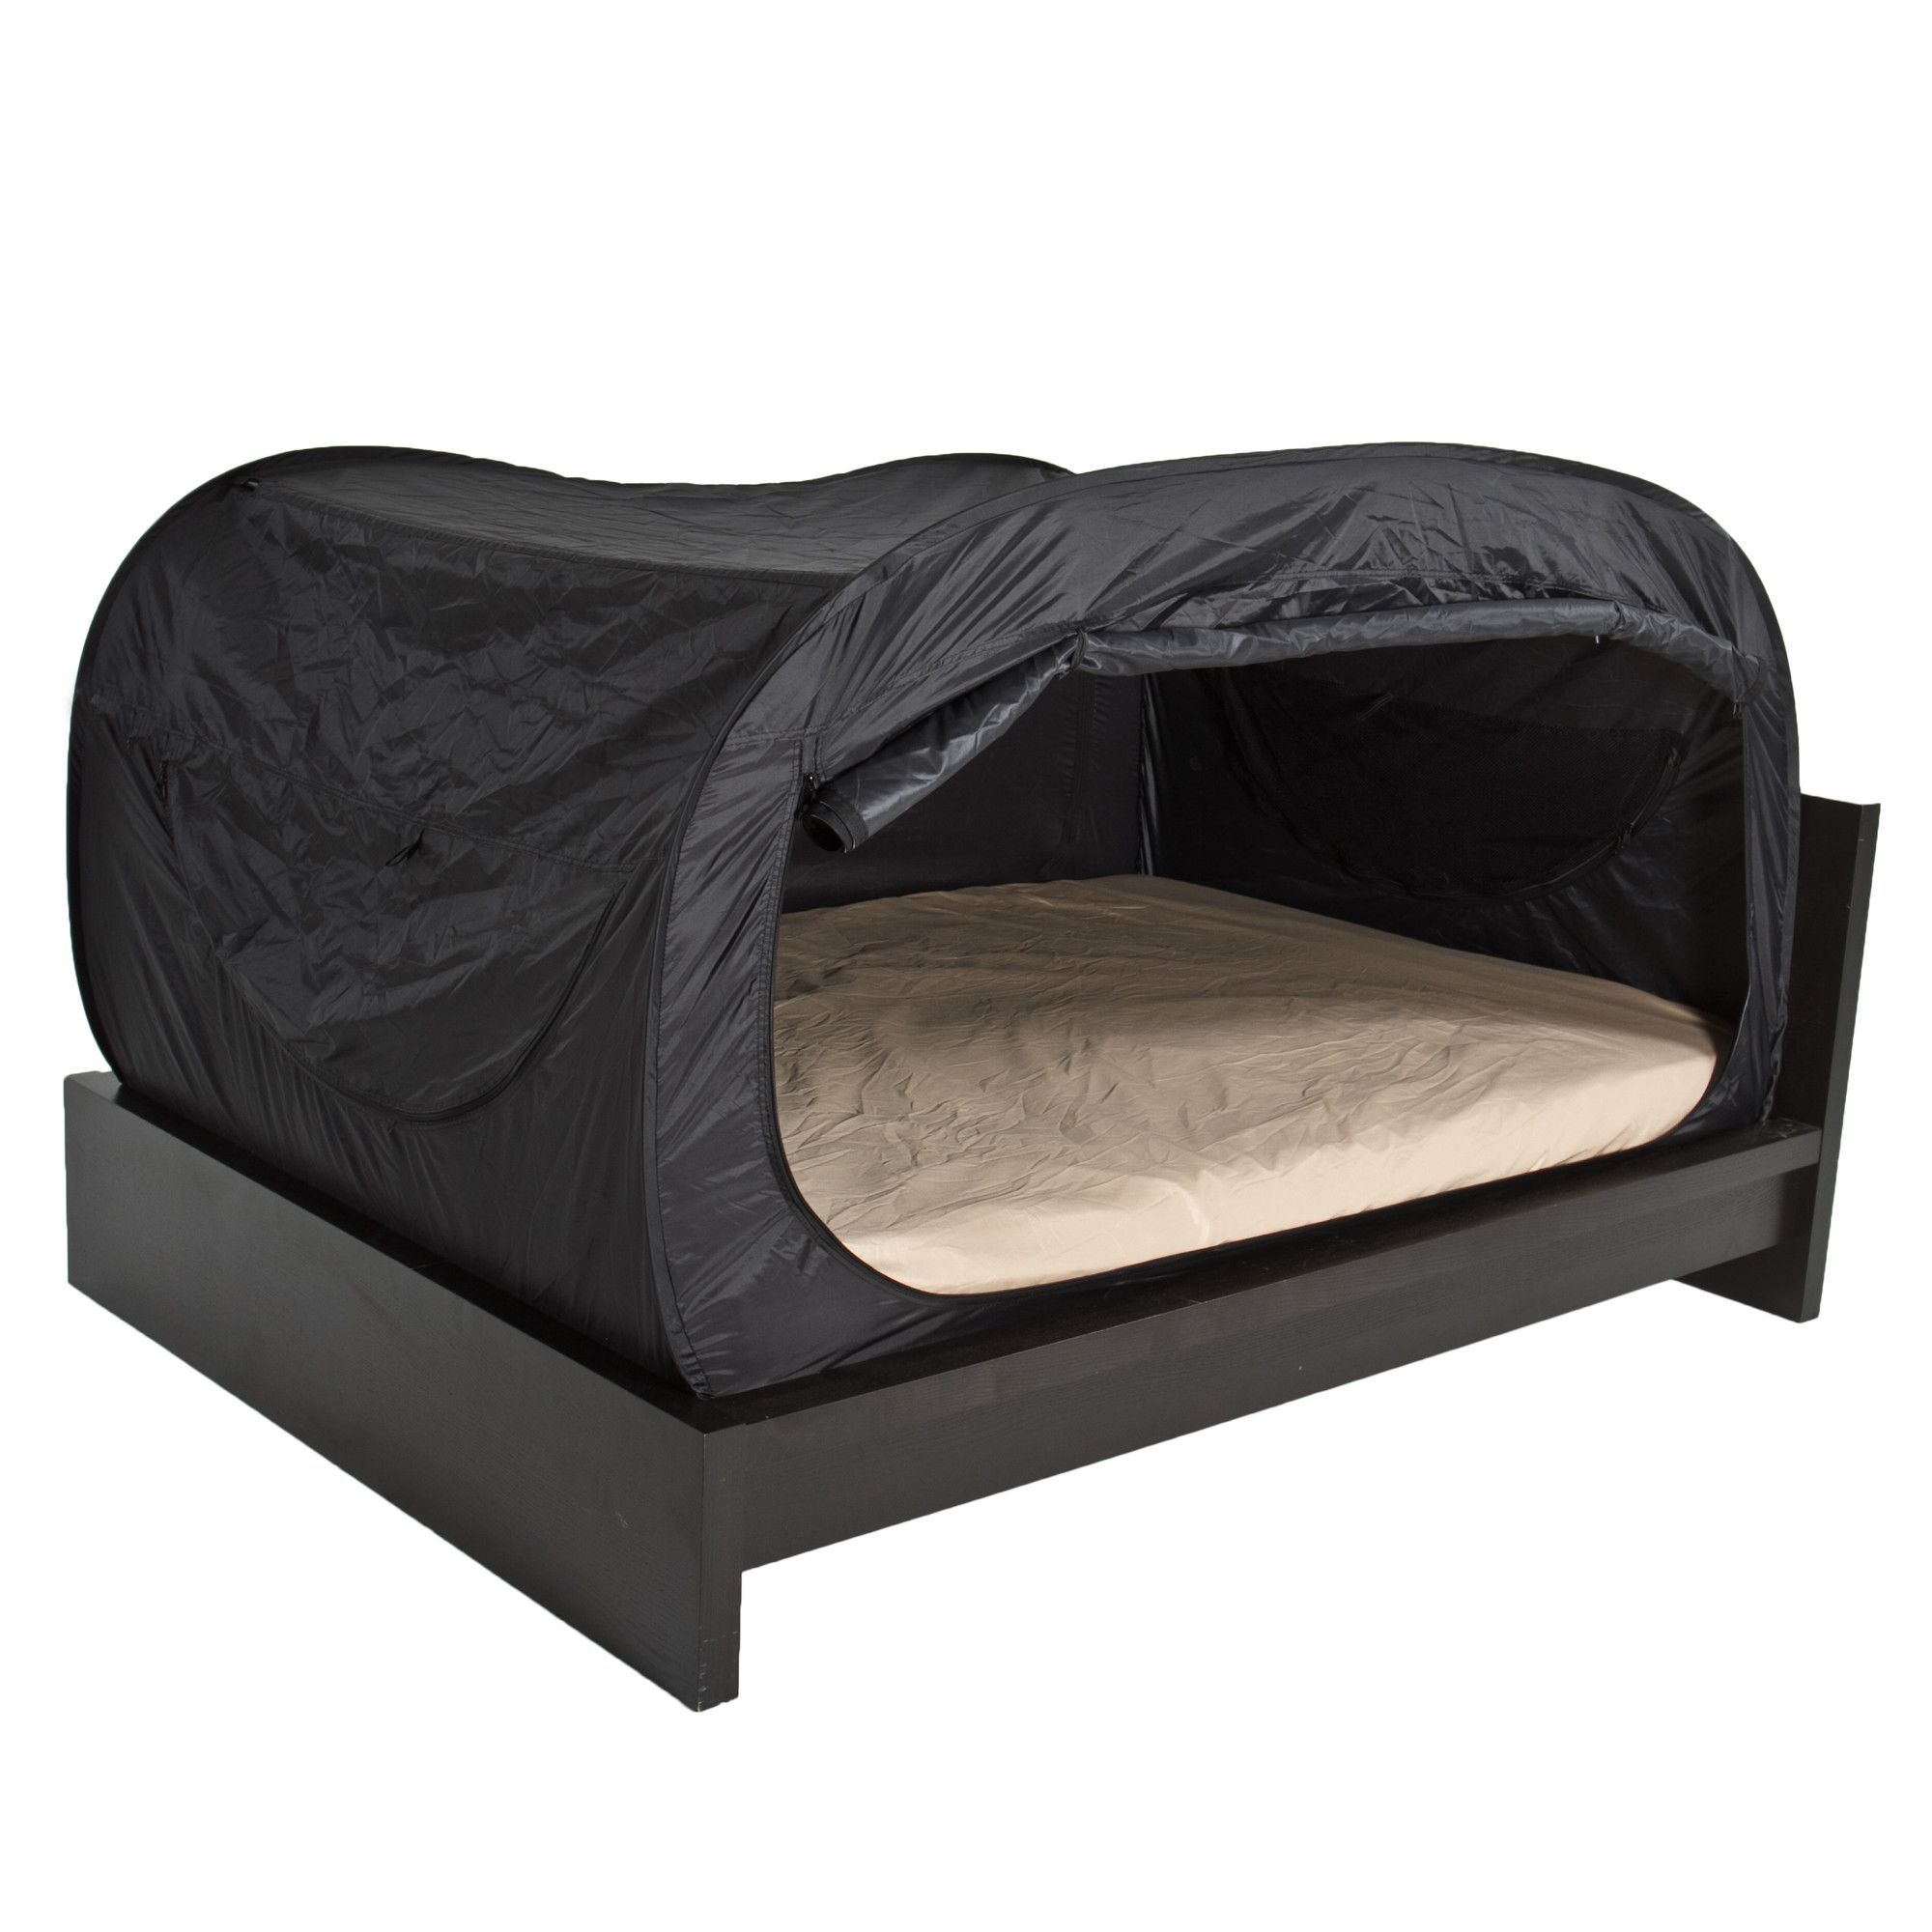 Bed Tent Bed tent, Bed, Bunk beds